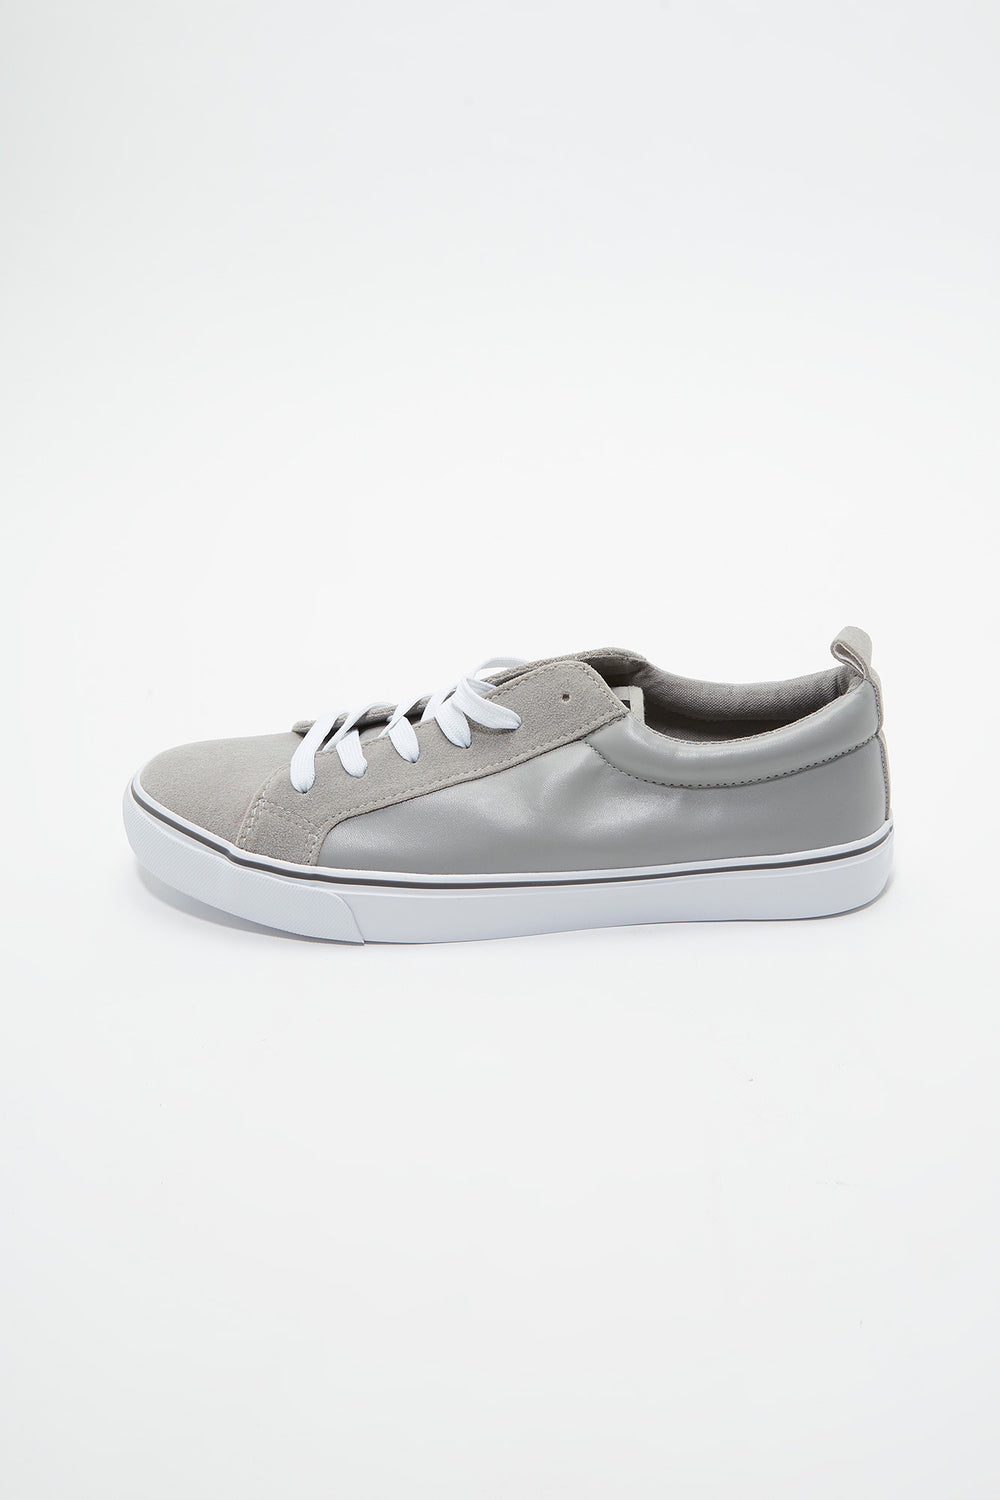 Chaussures Similicuir Suède Zoo York Homme Gris